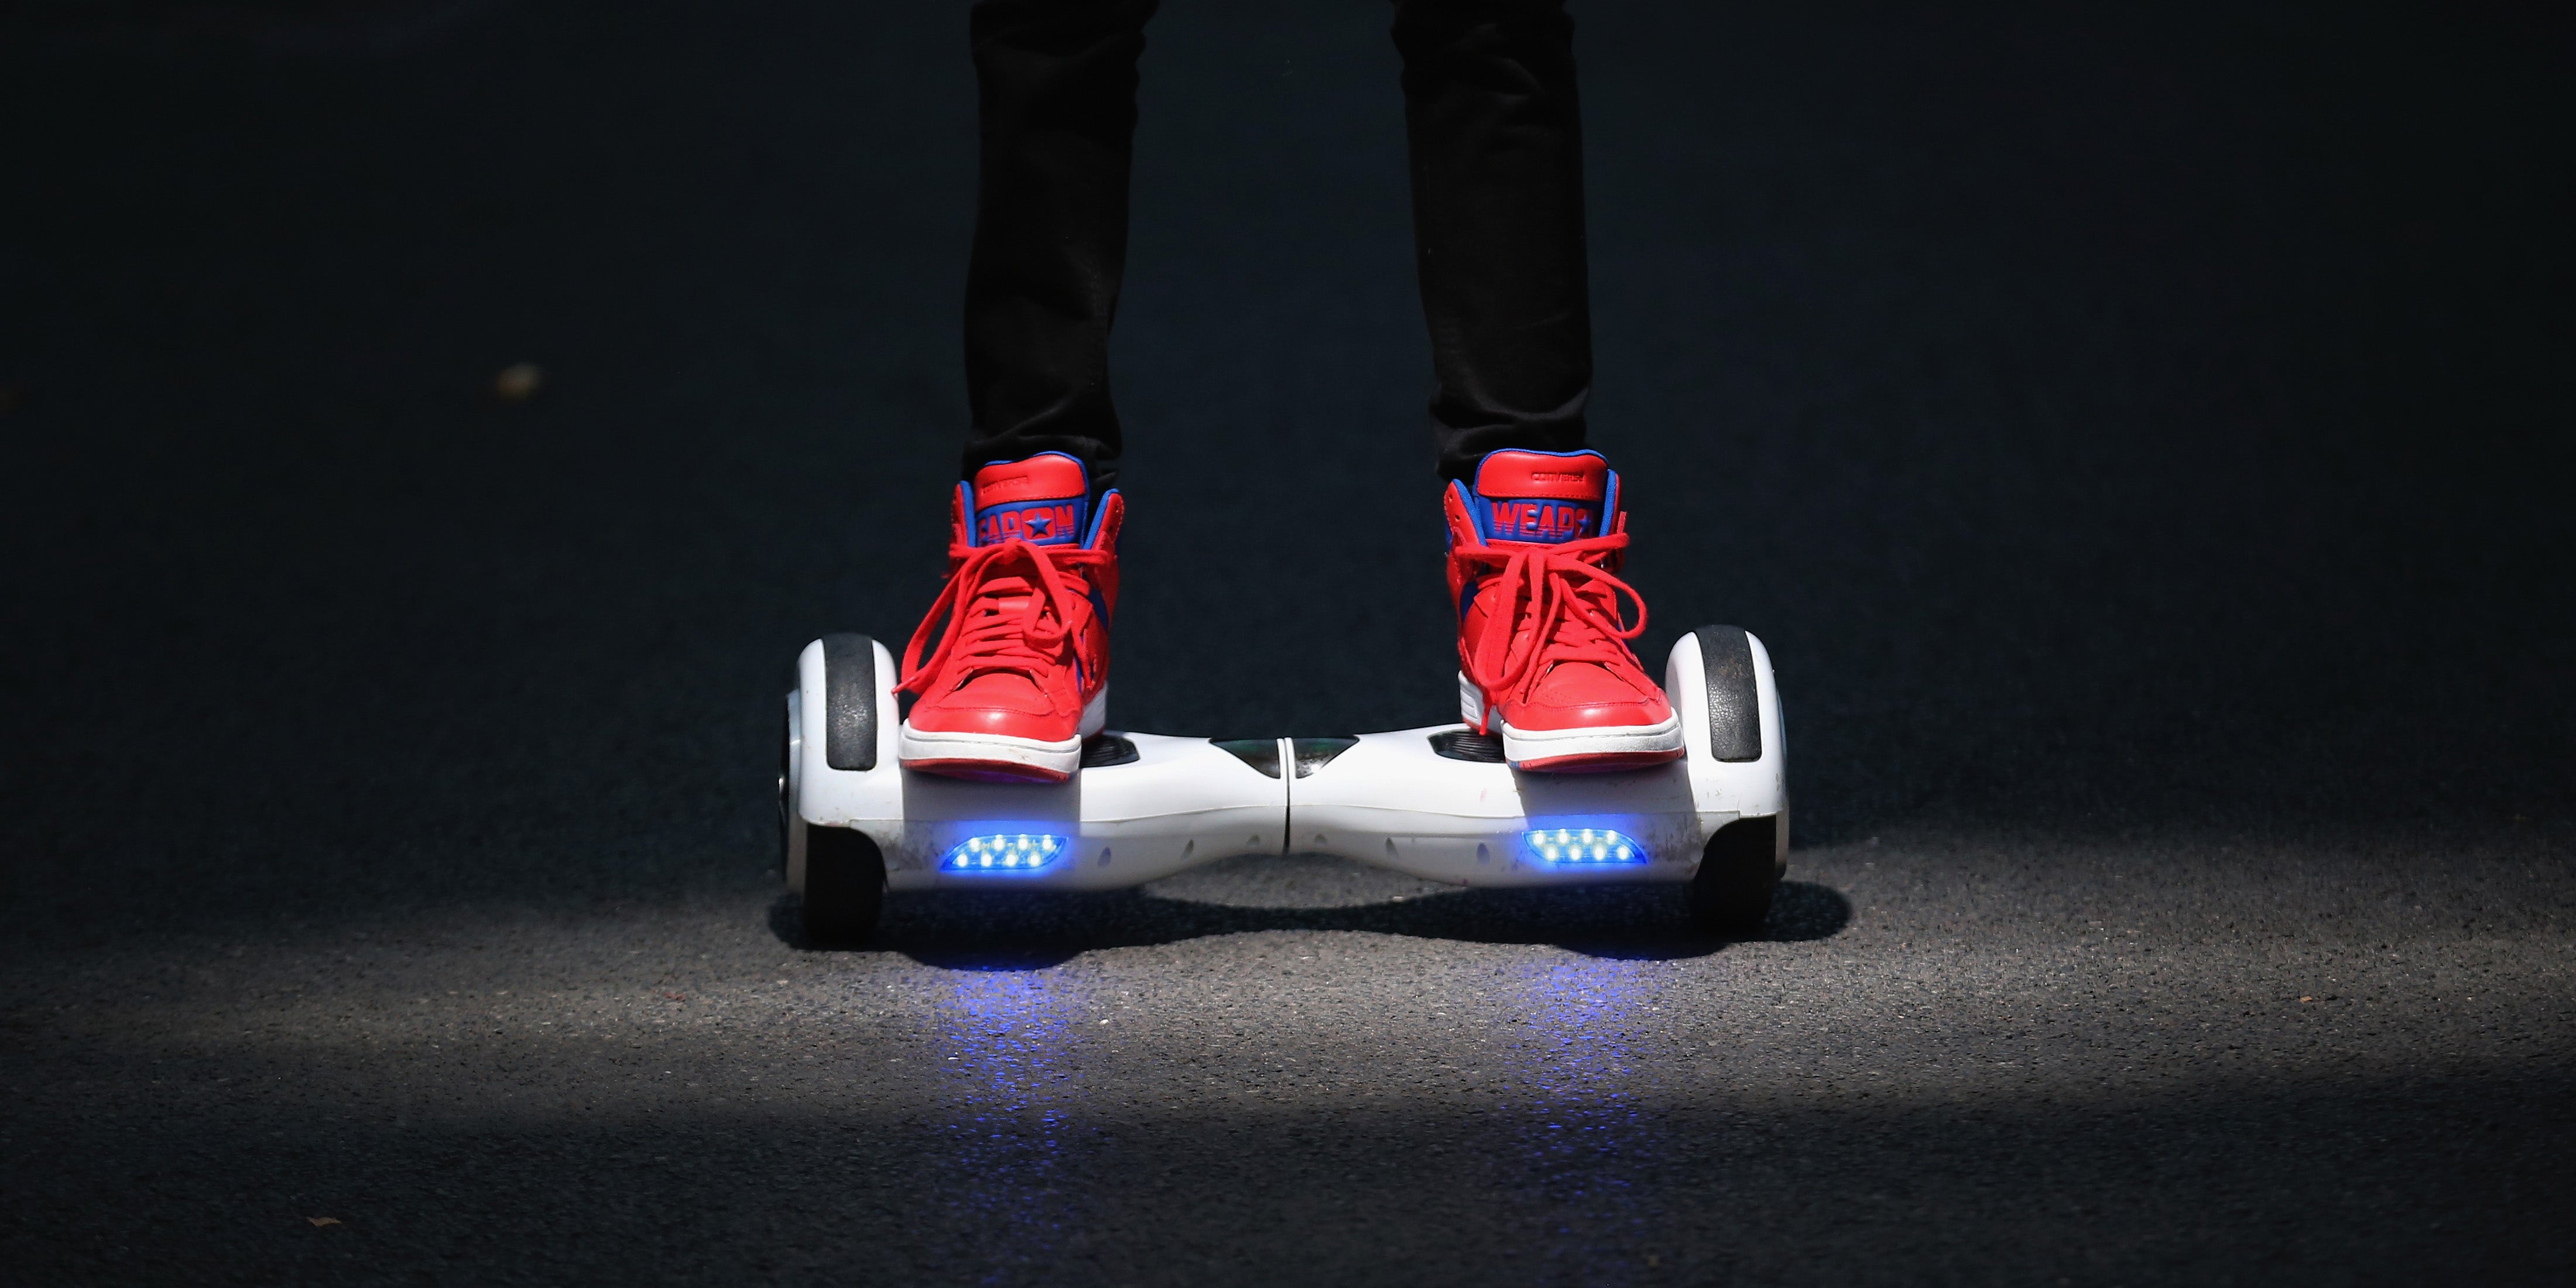 Hoverboards Are Illegal in NYC, Still Should Not Be Called Hoverboards